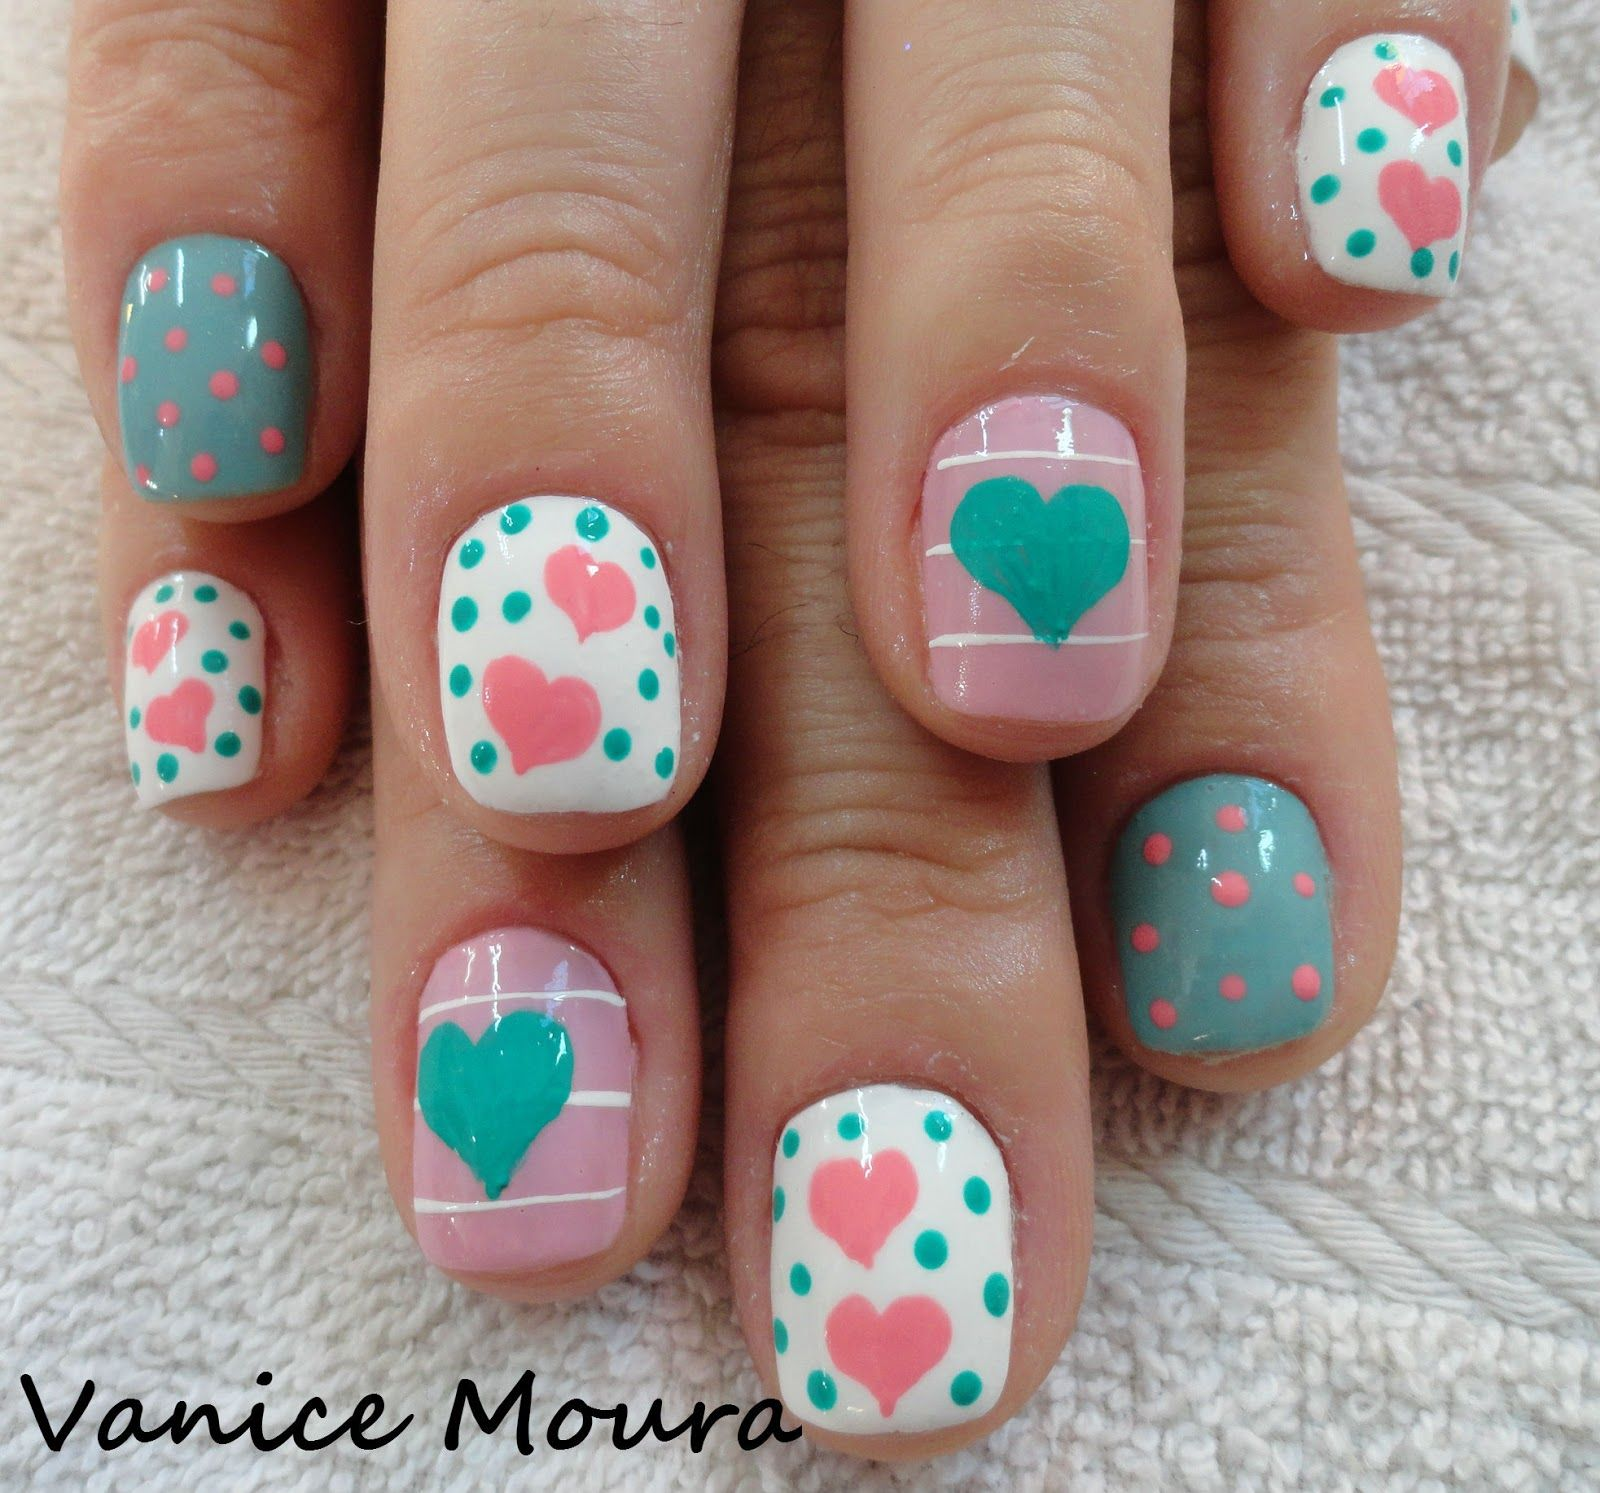 Pink, white and blue nail art with hearts, lines and polka dots ...